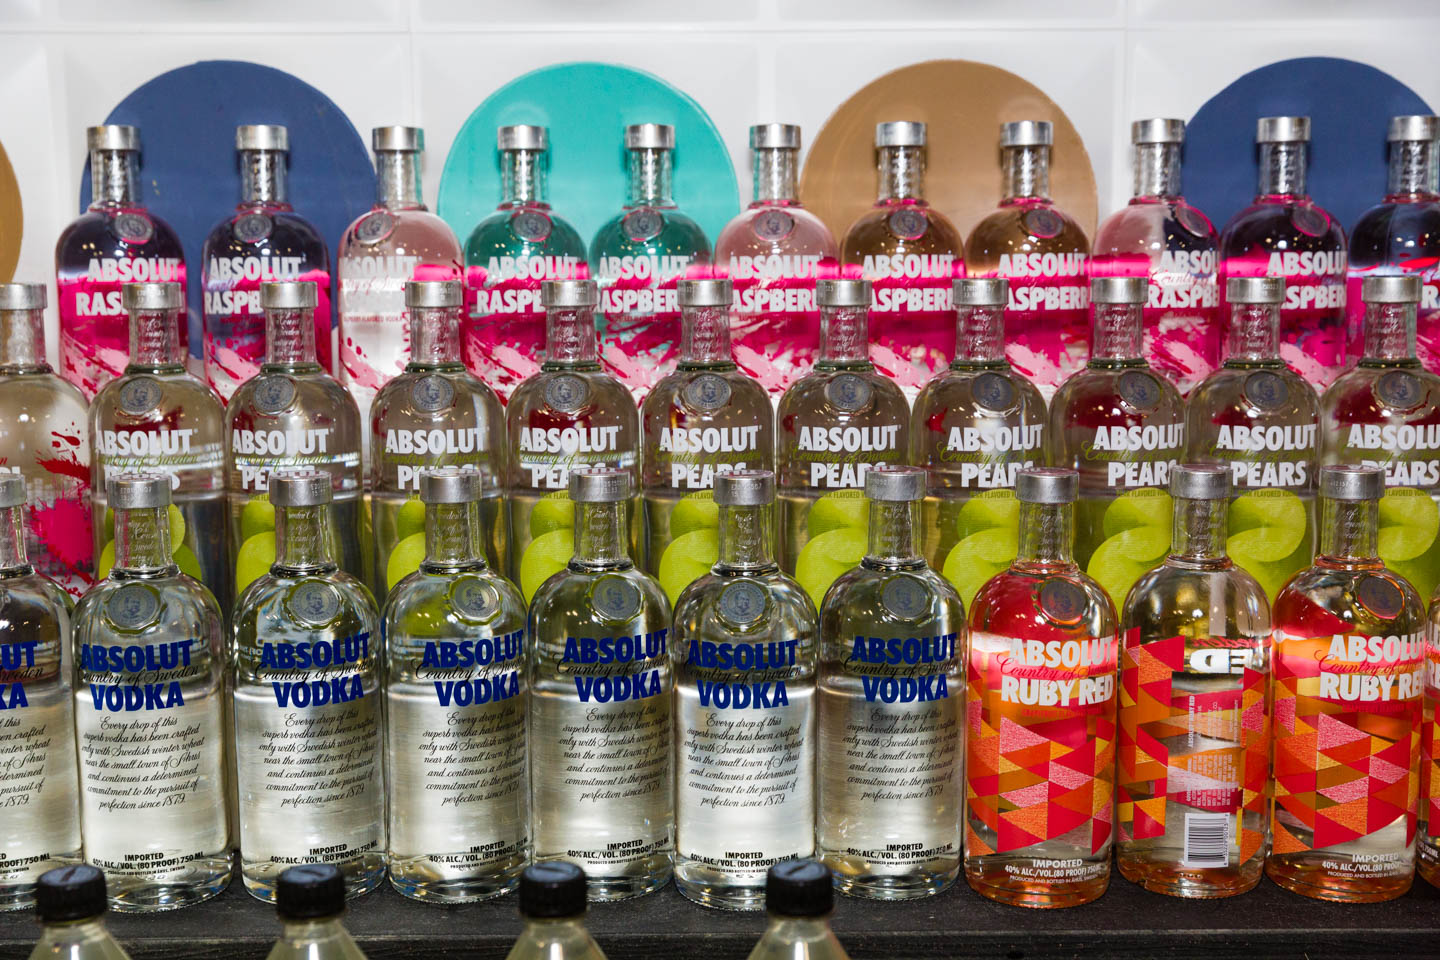 Bottles of Absolute Vodka